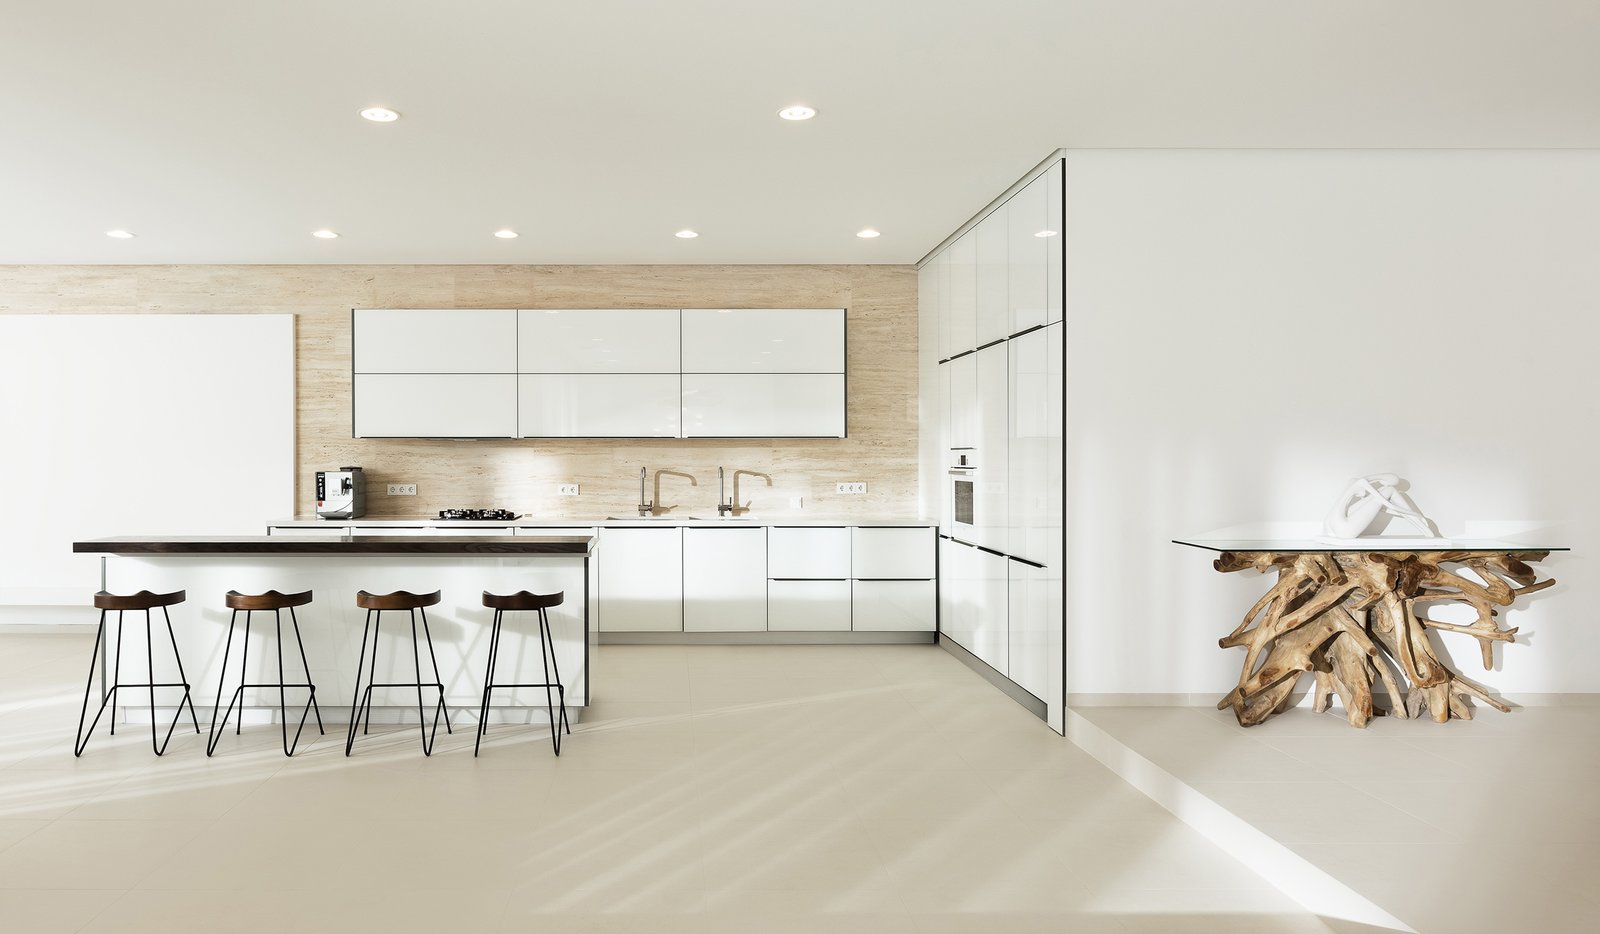 Kitchen, Quartzite, Stone, White, Wood, Metal, Travertine, Porcelain Tile, Stone Slab, Ceiling, Refrigerator, Wall Oven, Microwave, Dishwasher, Ice Maker, Cooktops, and Drop In WH Residence | M3 Architects  Best Kitchen Ice Maker Ceiling Cooktops Wood Photos from WH Residence